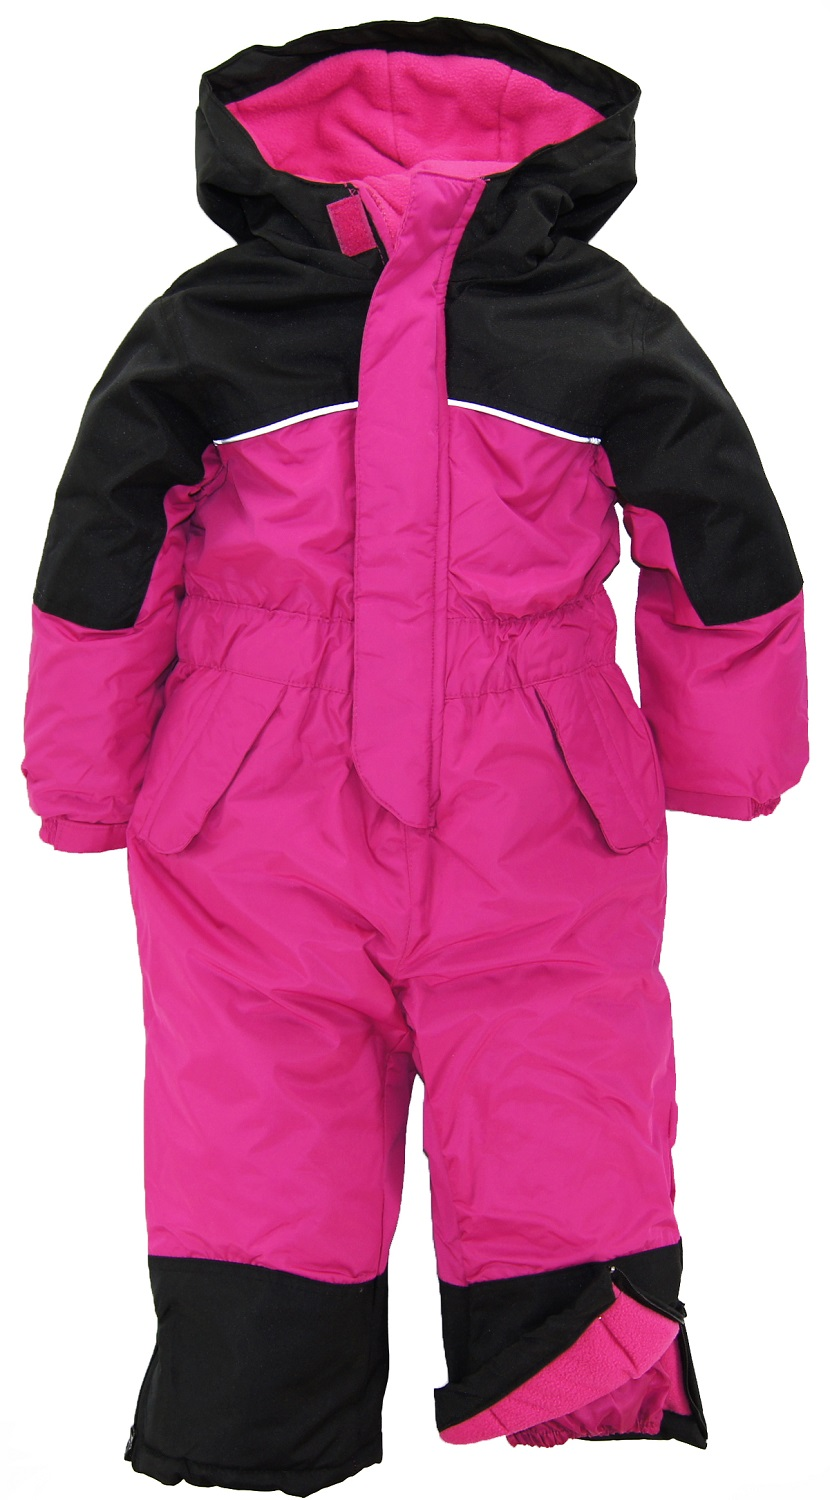 Mud Kingdom 3 Piece Baby Toddler All In One Snowsuit by Mud Kingdom. 3 out of 5 stars $ $ 42 Some sizes/colors are Prime eligible. FREE Shipping on eligible orders. See more choices. kensie Baby Girls' 2 Piece Snowsuit. by kensie. out of 5 stars 4. $ $ 45 Some sizes/colors are Prime eligible.